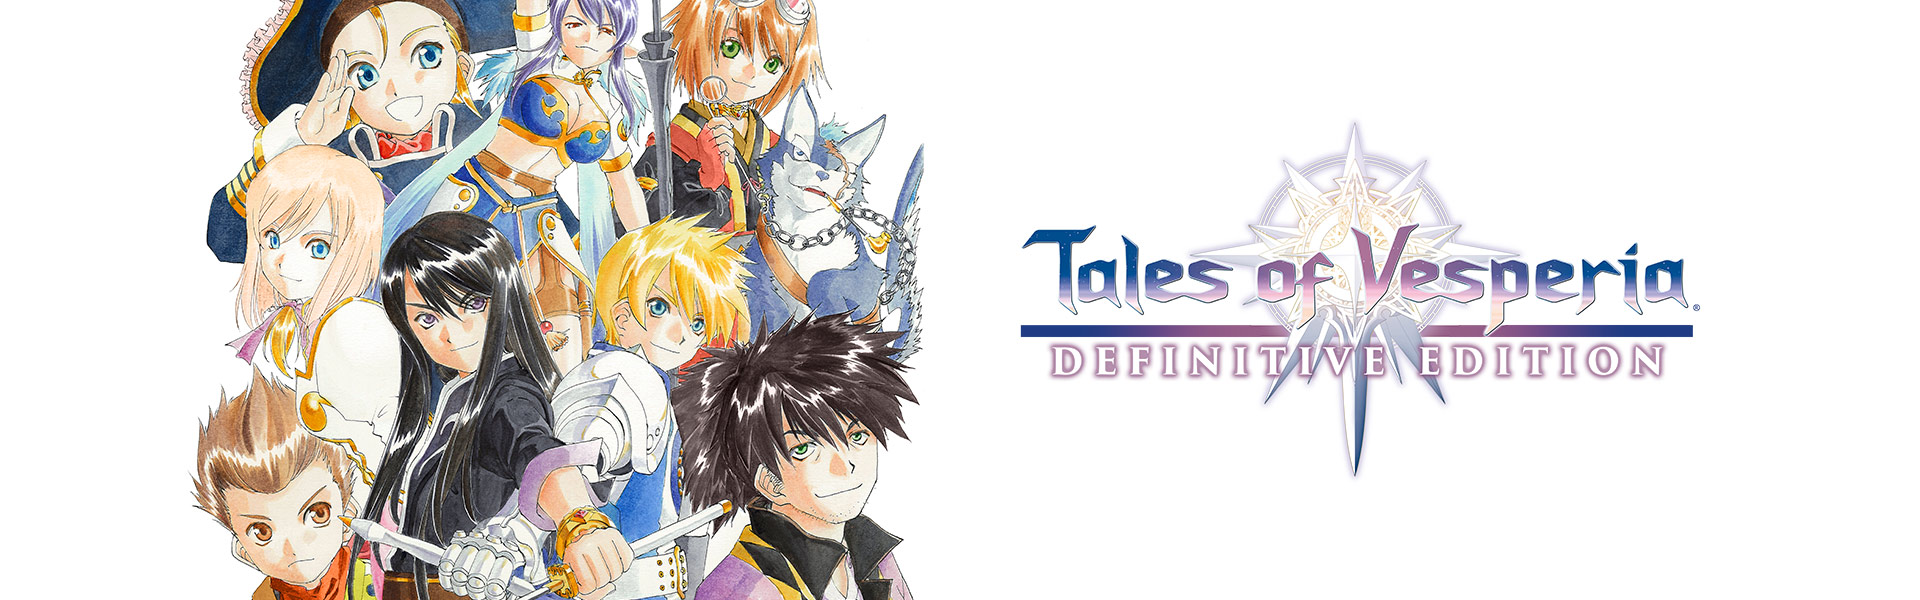 Tales of Vesperia: Definitive Edition, grupo de personajes jugables amontonados